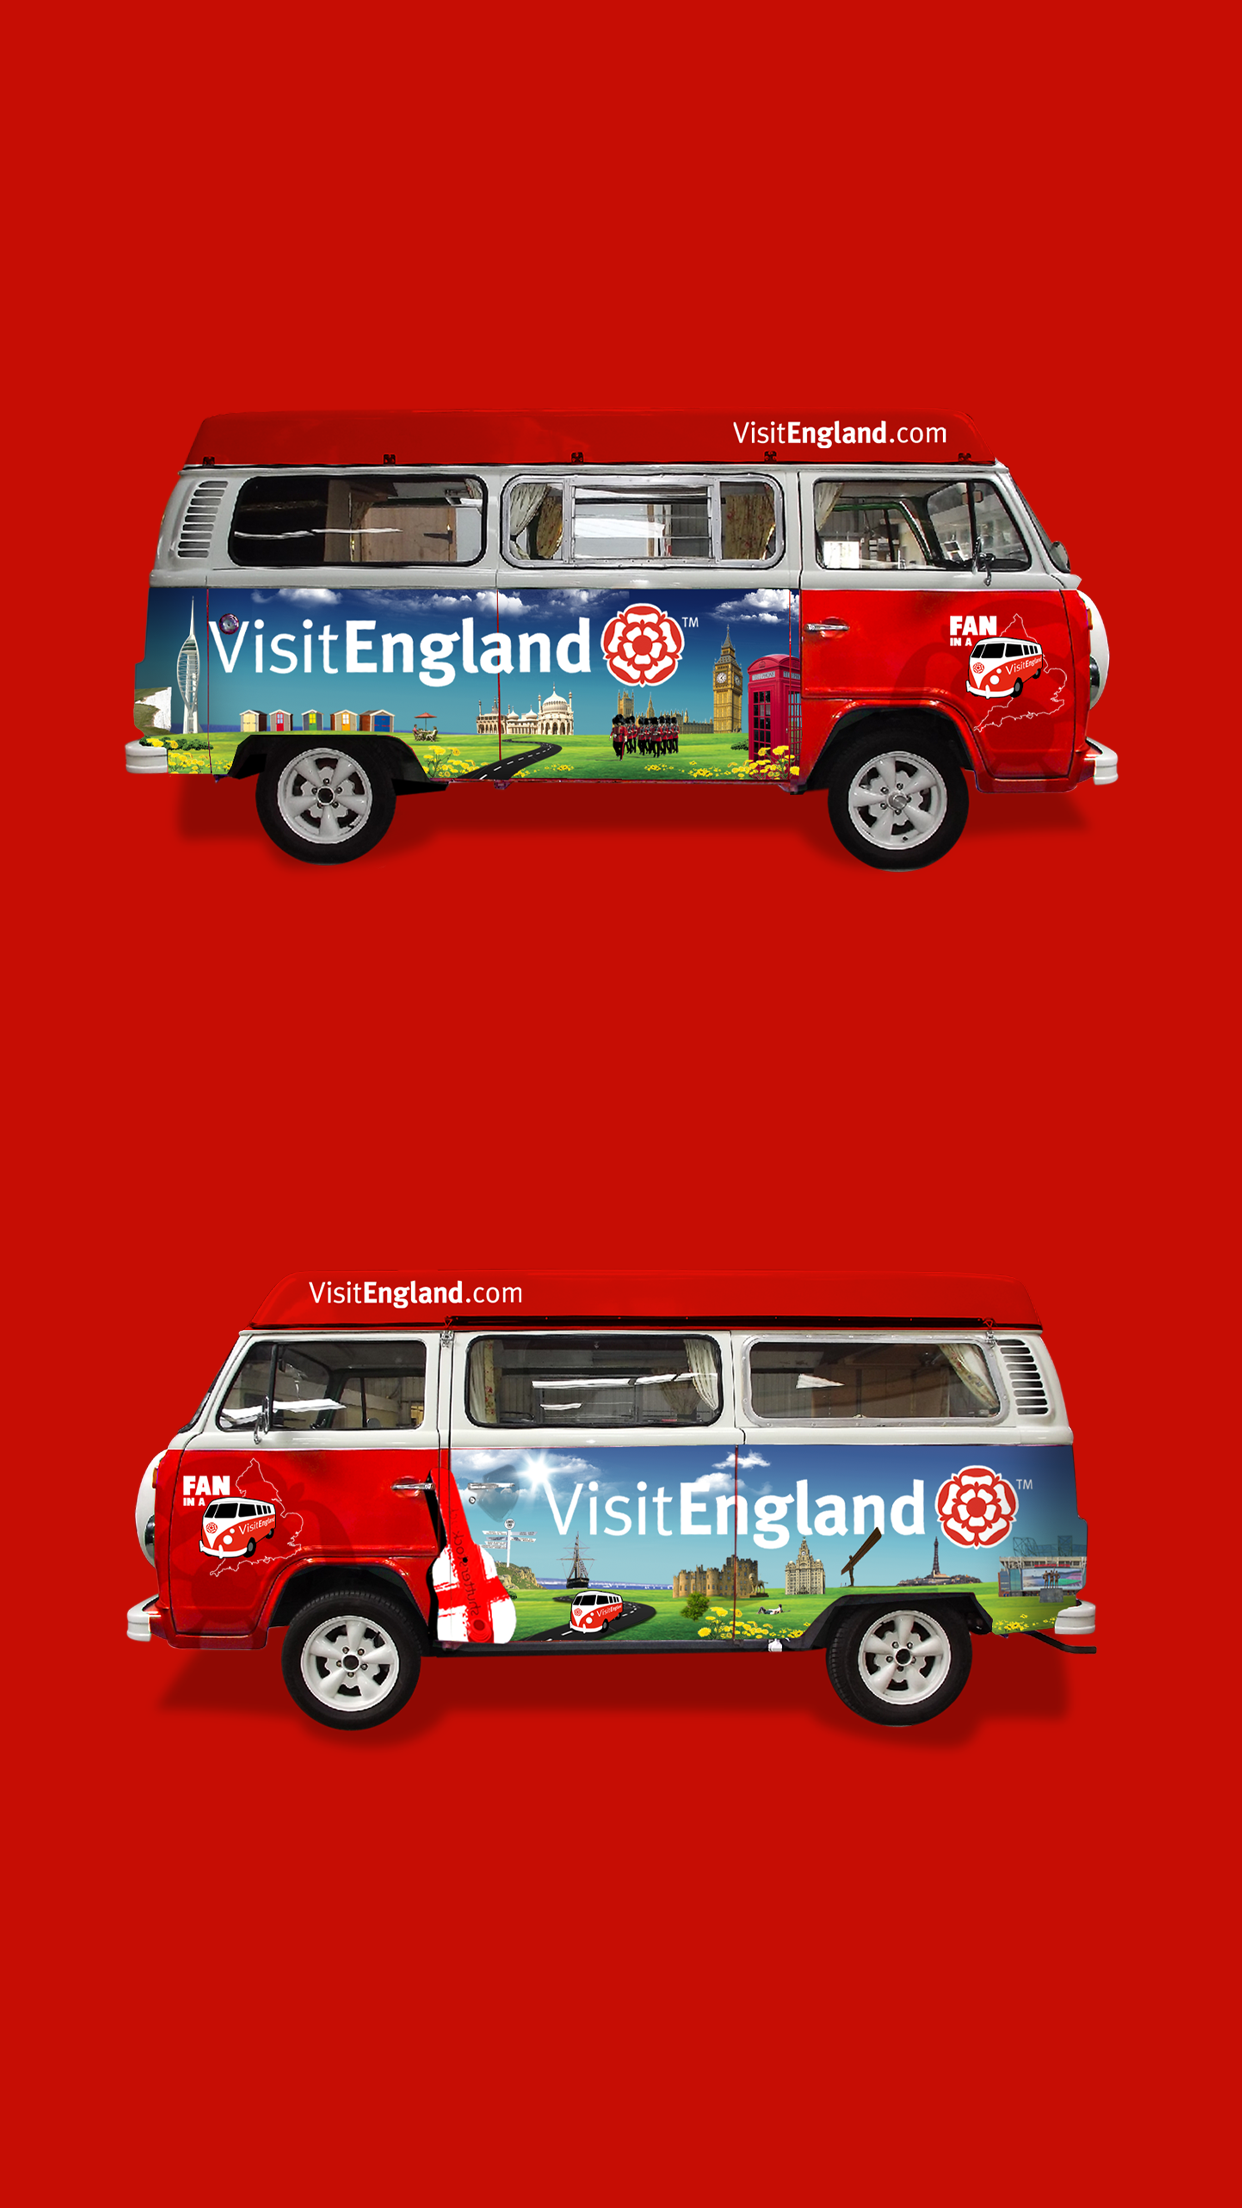 Visit England Fan in a Van Sides Mobile